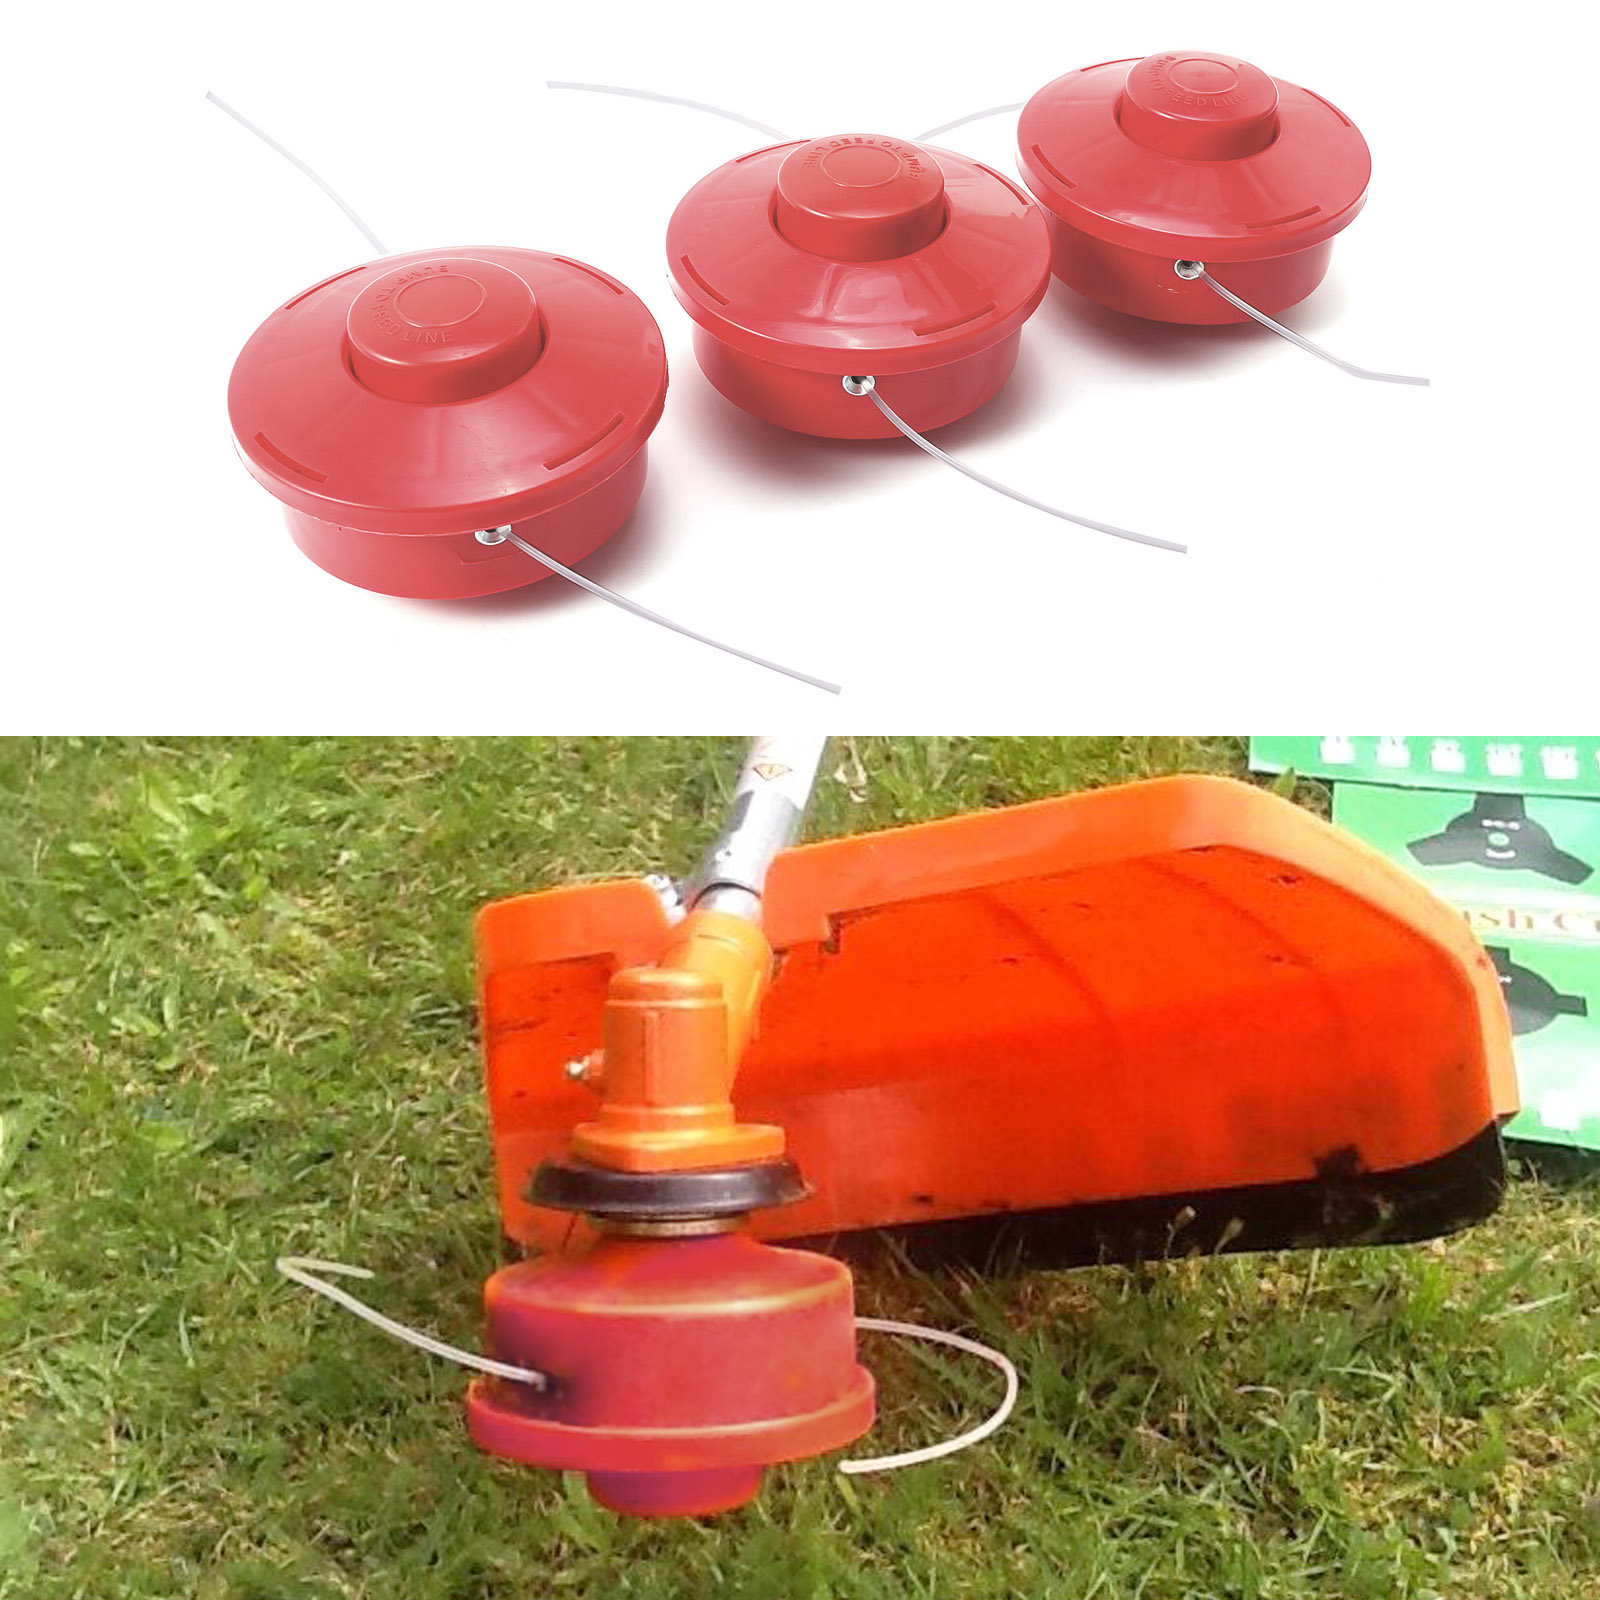 Details about Strimmer Head Bump Feed Nylon 2 Line Strimmer Brushcutter  With 2 4mm Cut Rope